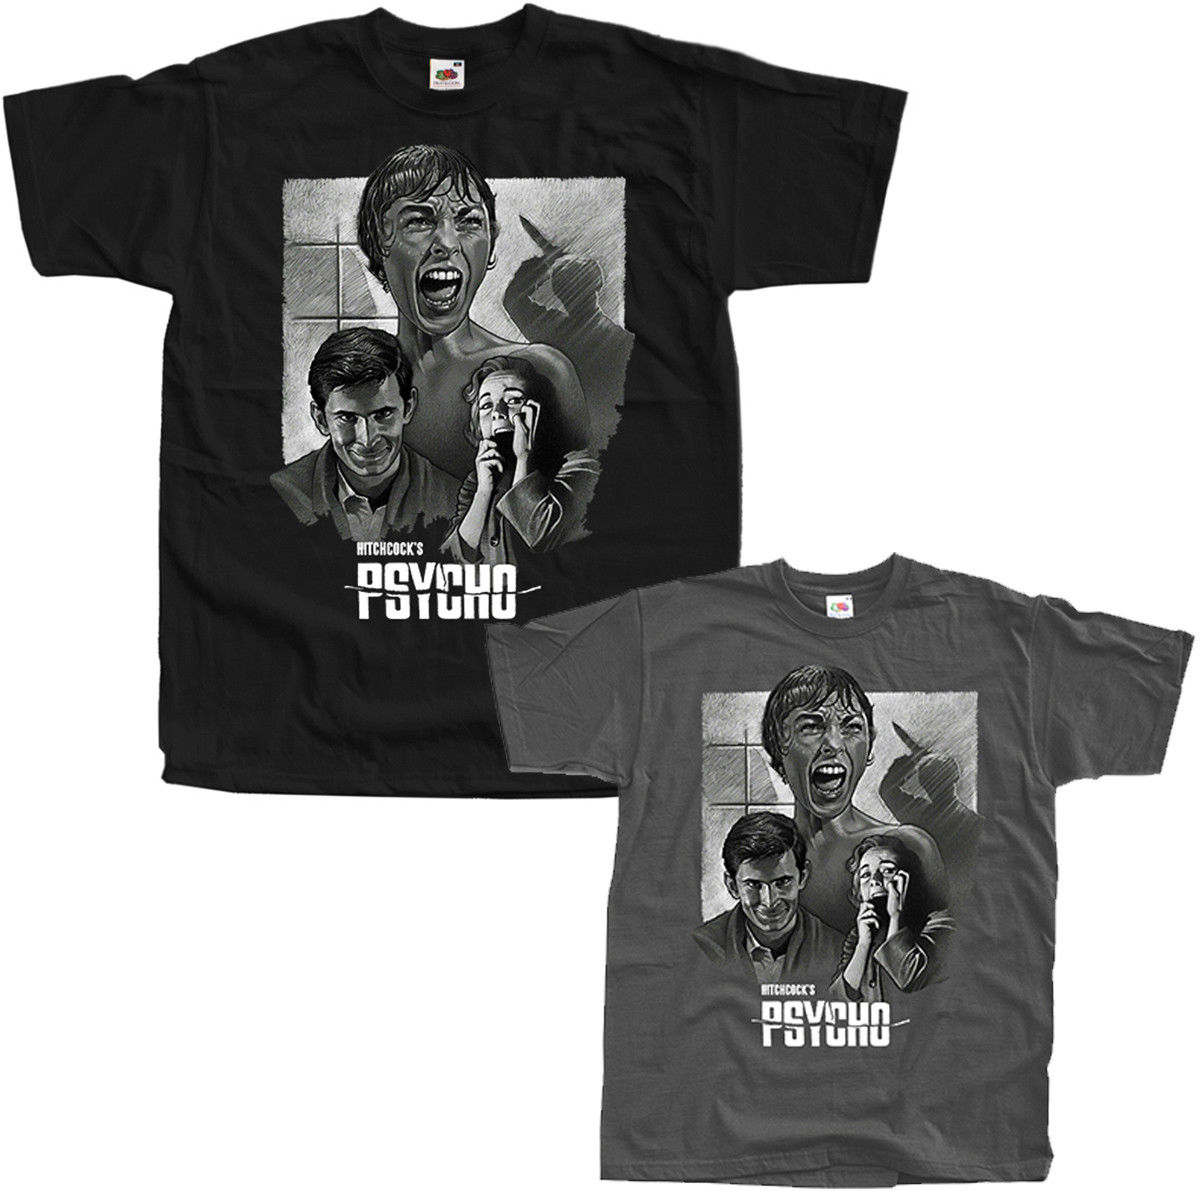 Psycho V2 Alfred Hitchcock movie 1960 T Shirts BLACK ALL SIZES S 5XL 2020 High quality Brand T shirt Casual Short sleeve O-neck image